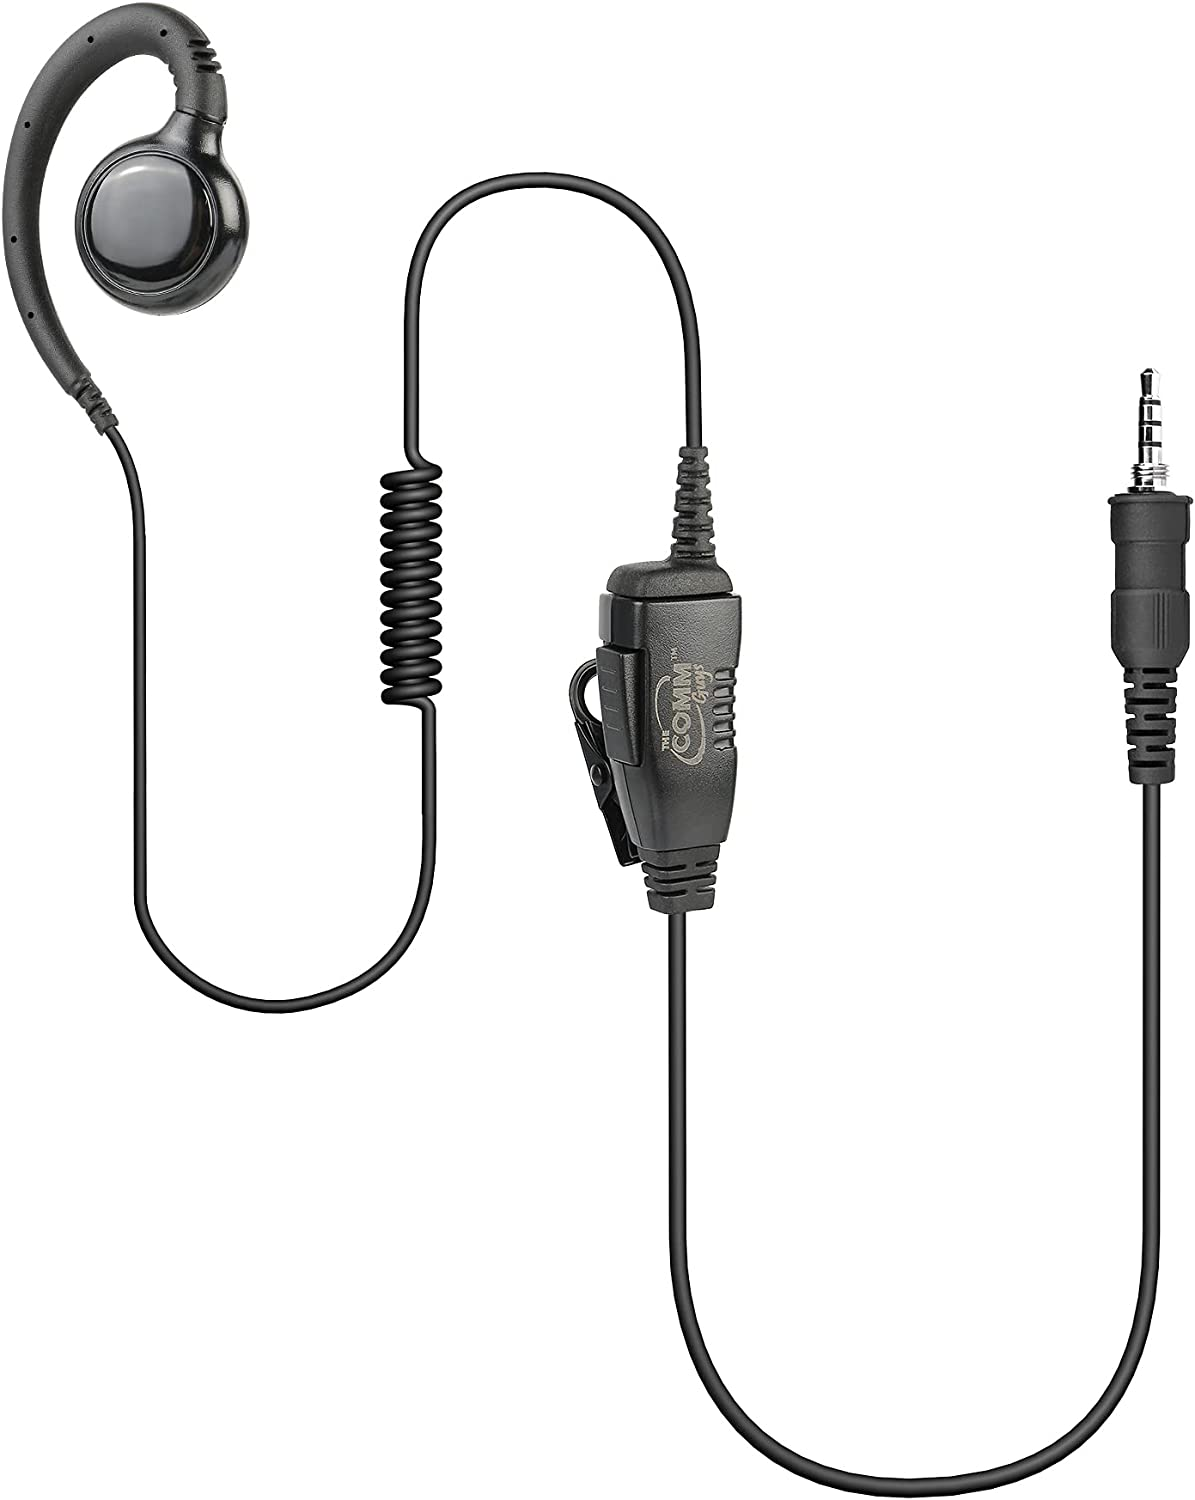 The Comm Guys Tulsa Mall 1-Wire Swivel Loop Earpiece Headset Compa Easy-to-use Mic and